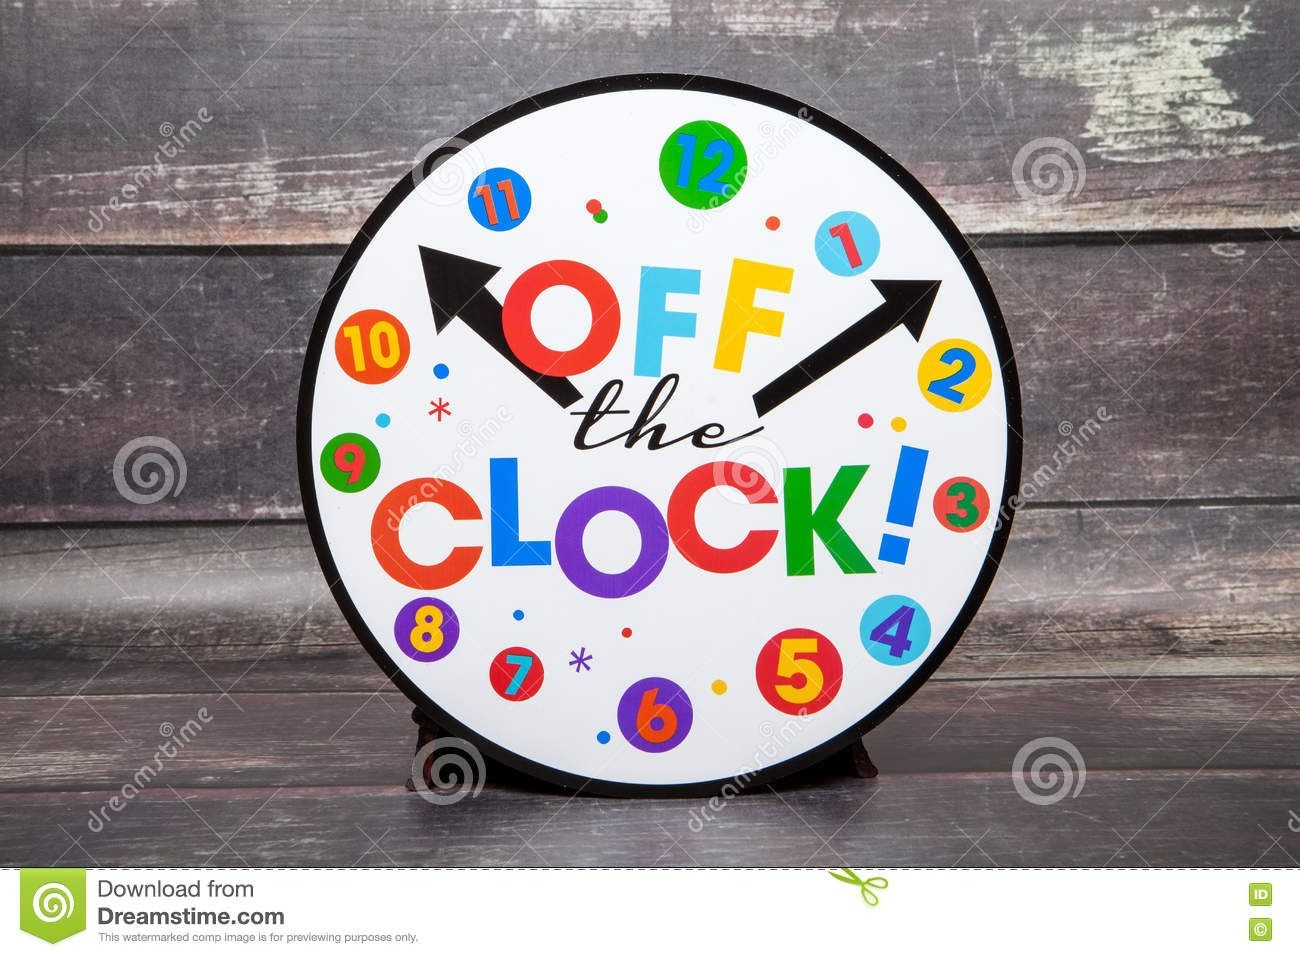 Off The Clock Stock Photo Image Of Retire, Life, Concept